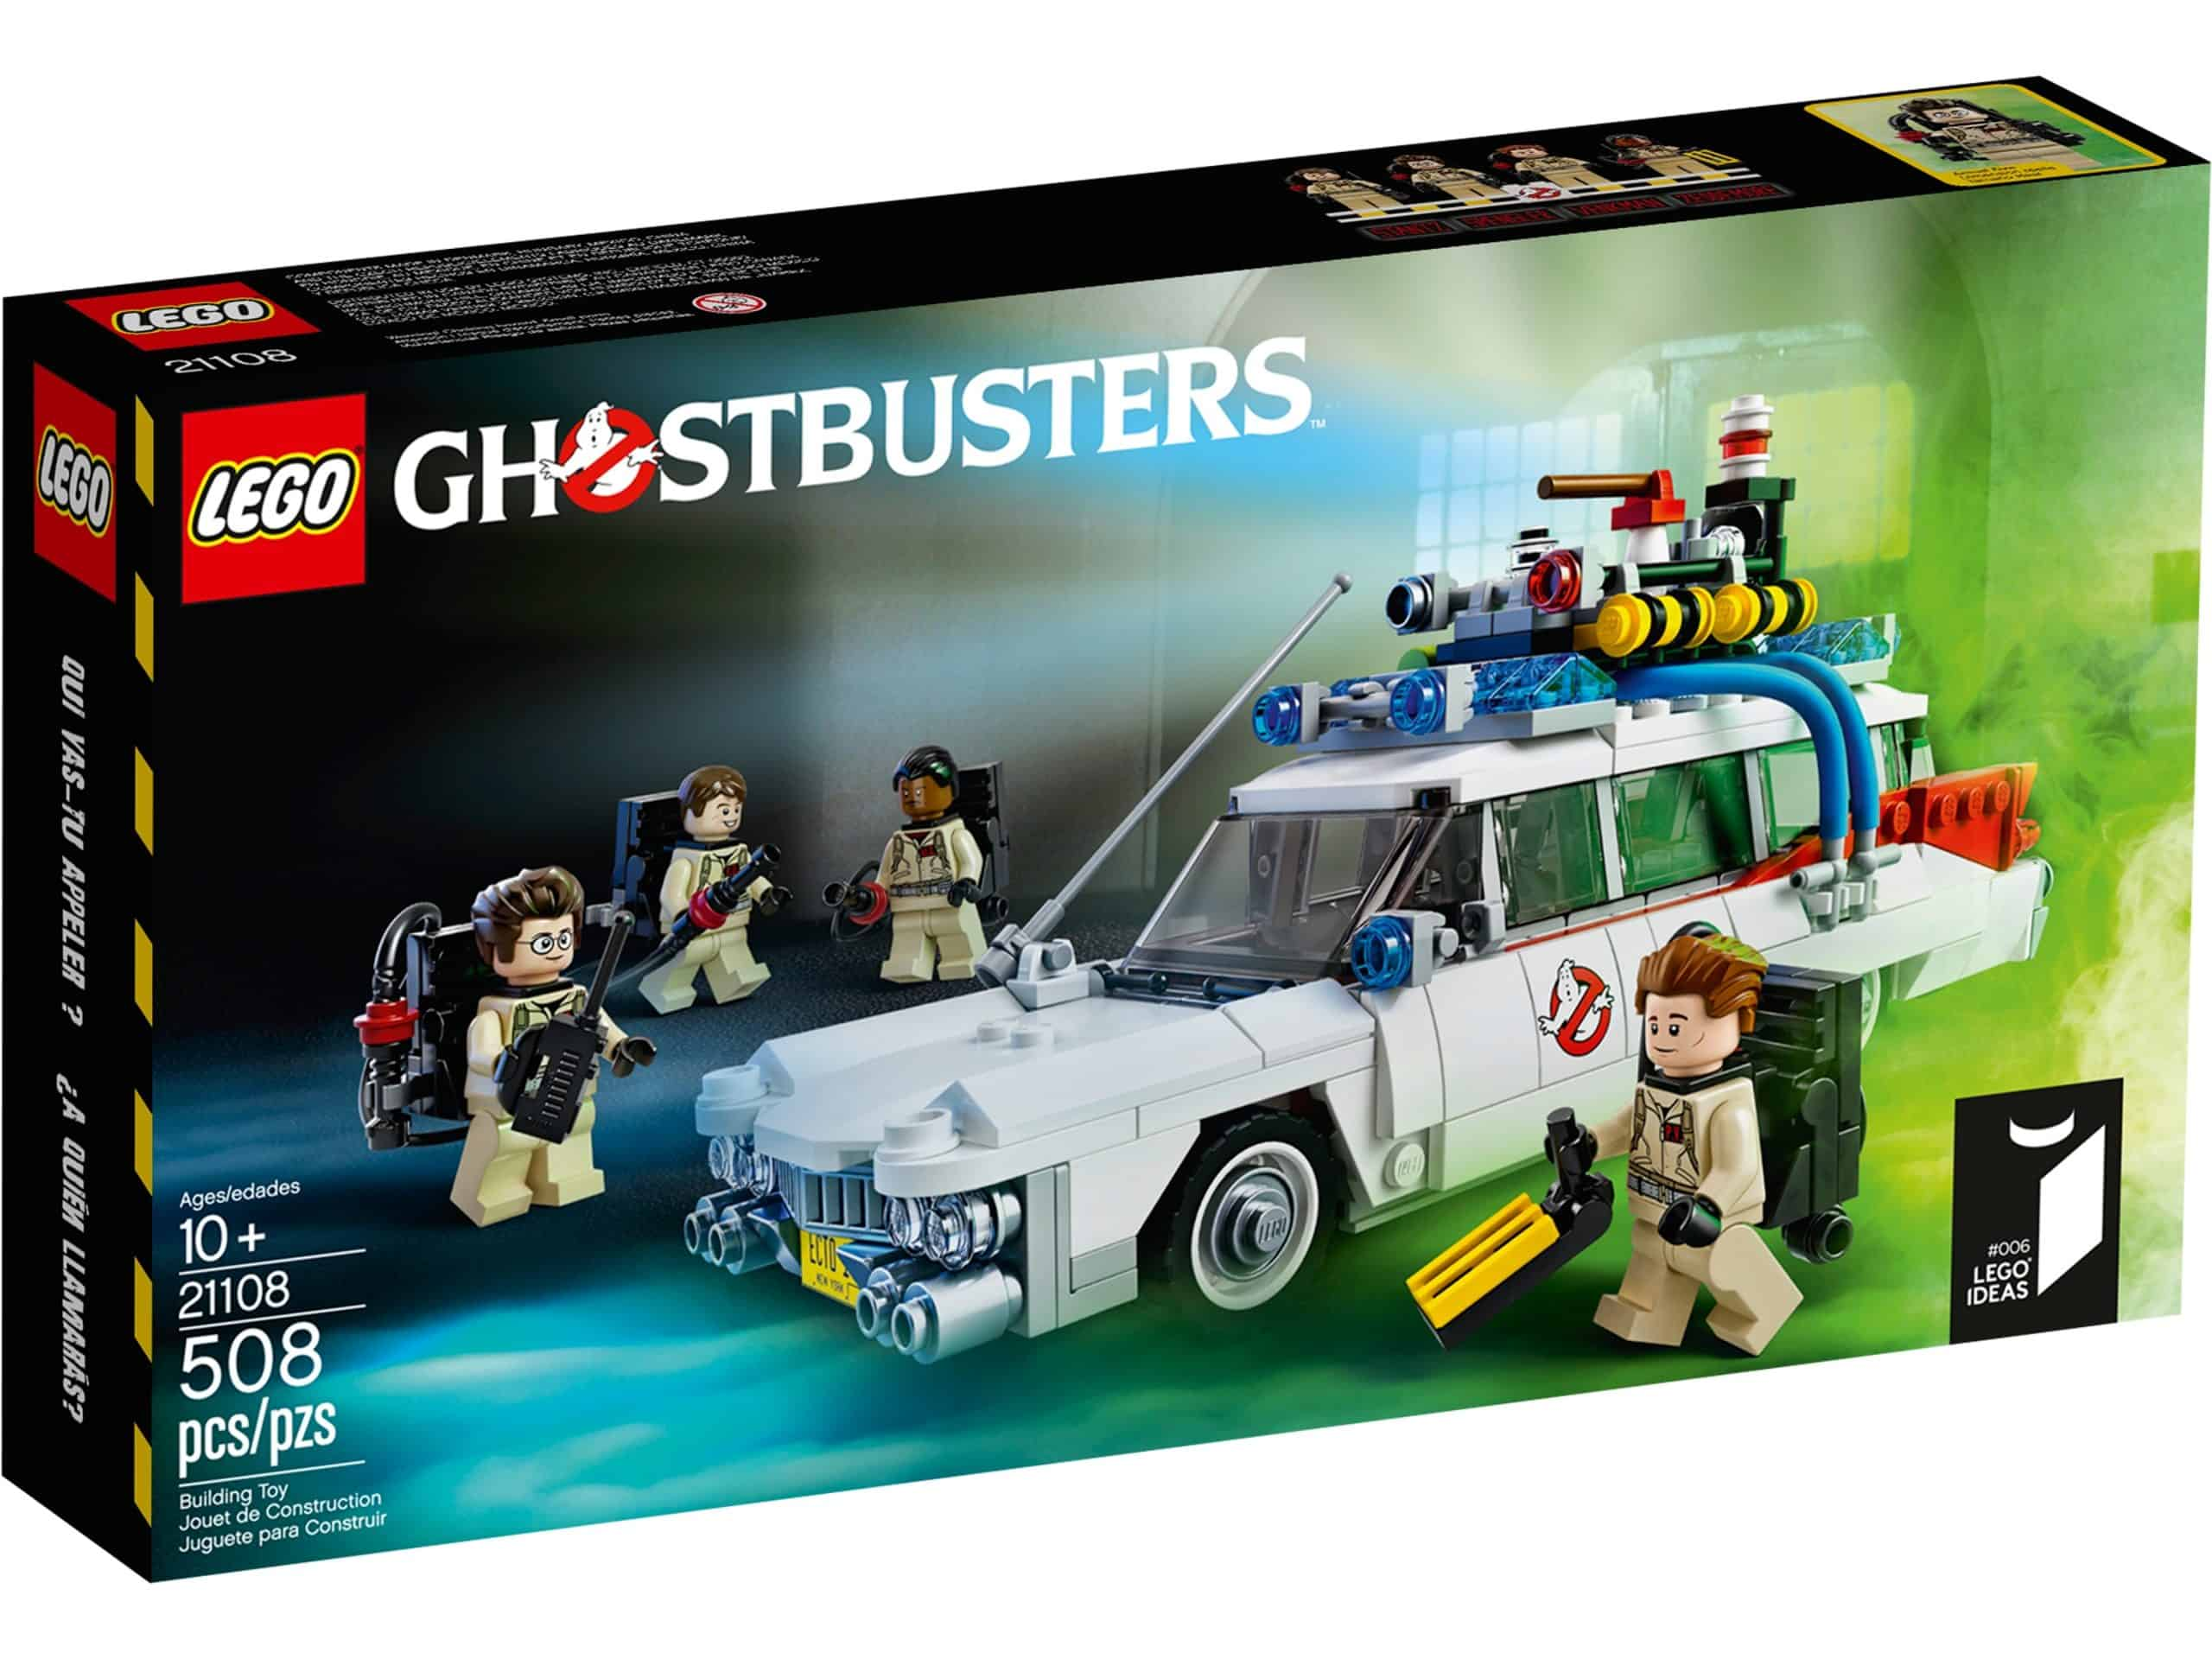 lego 21108 ghostbusters ecto 1 scaled